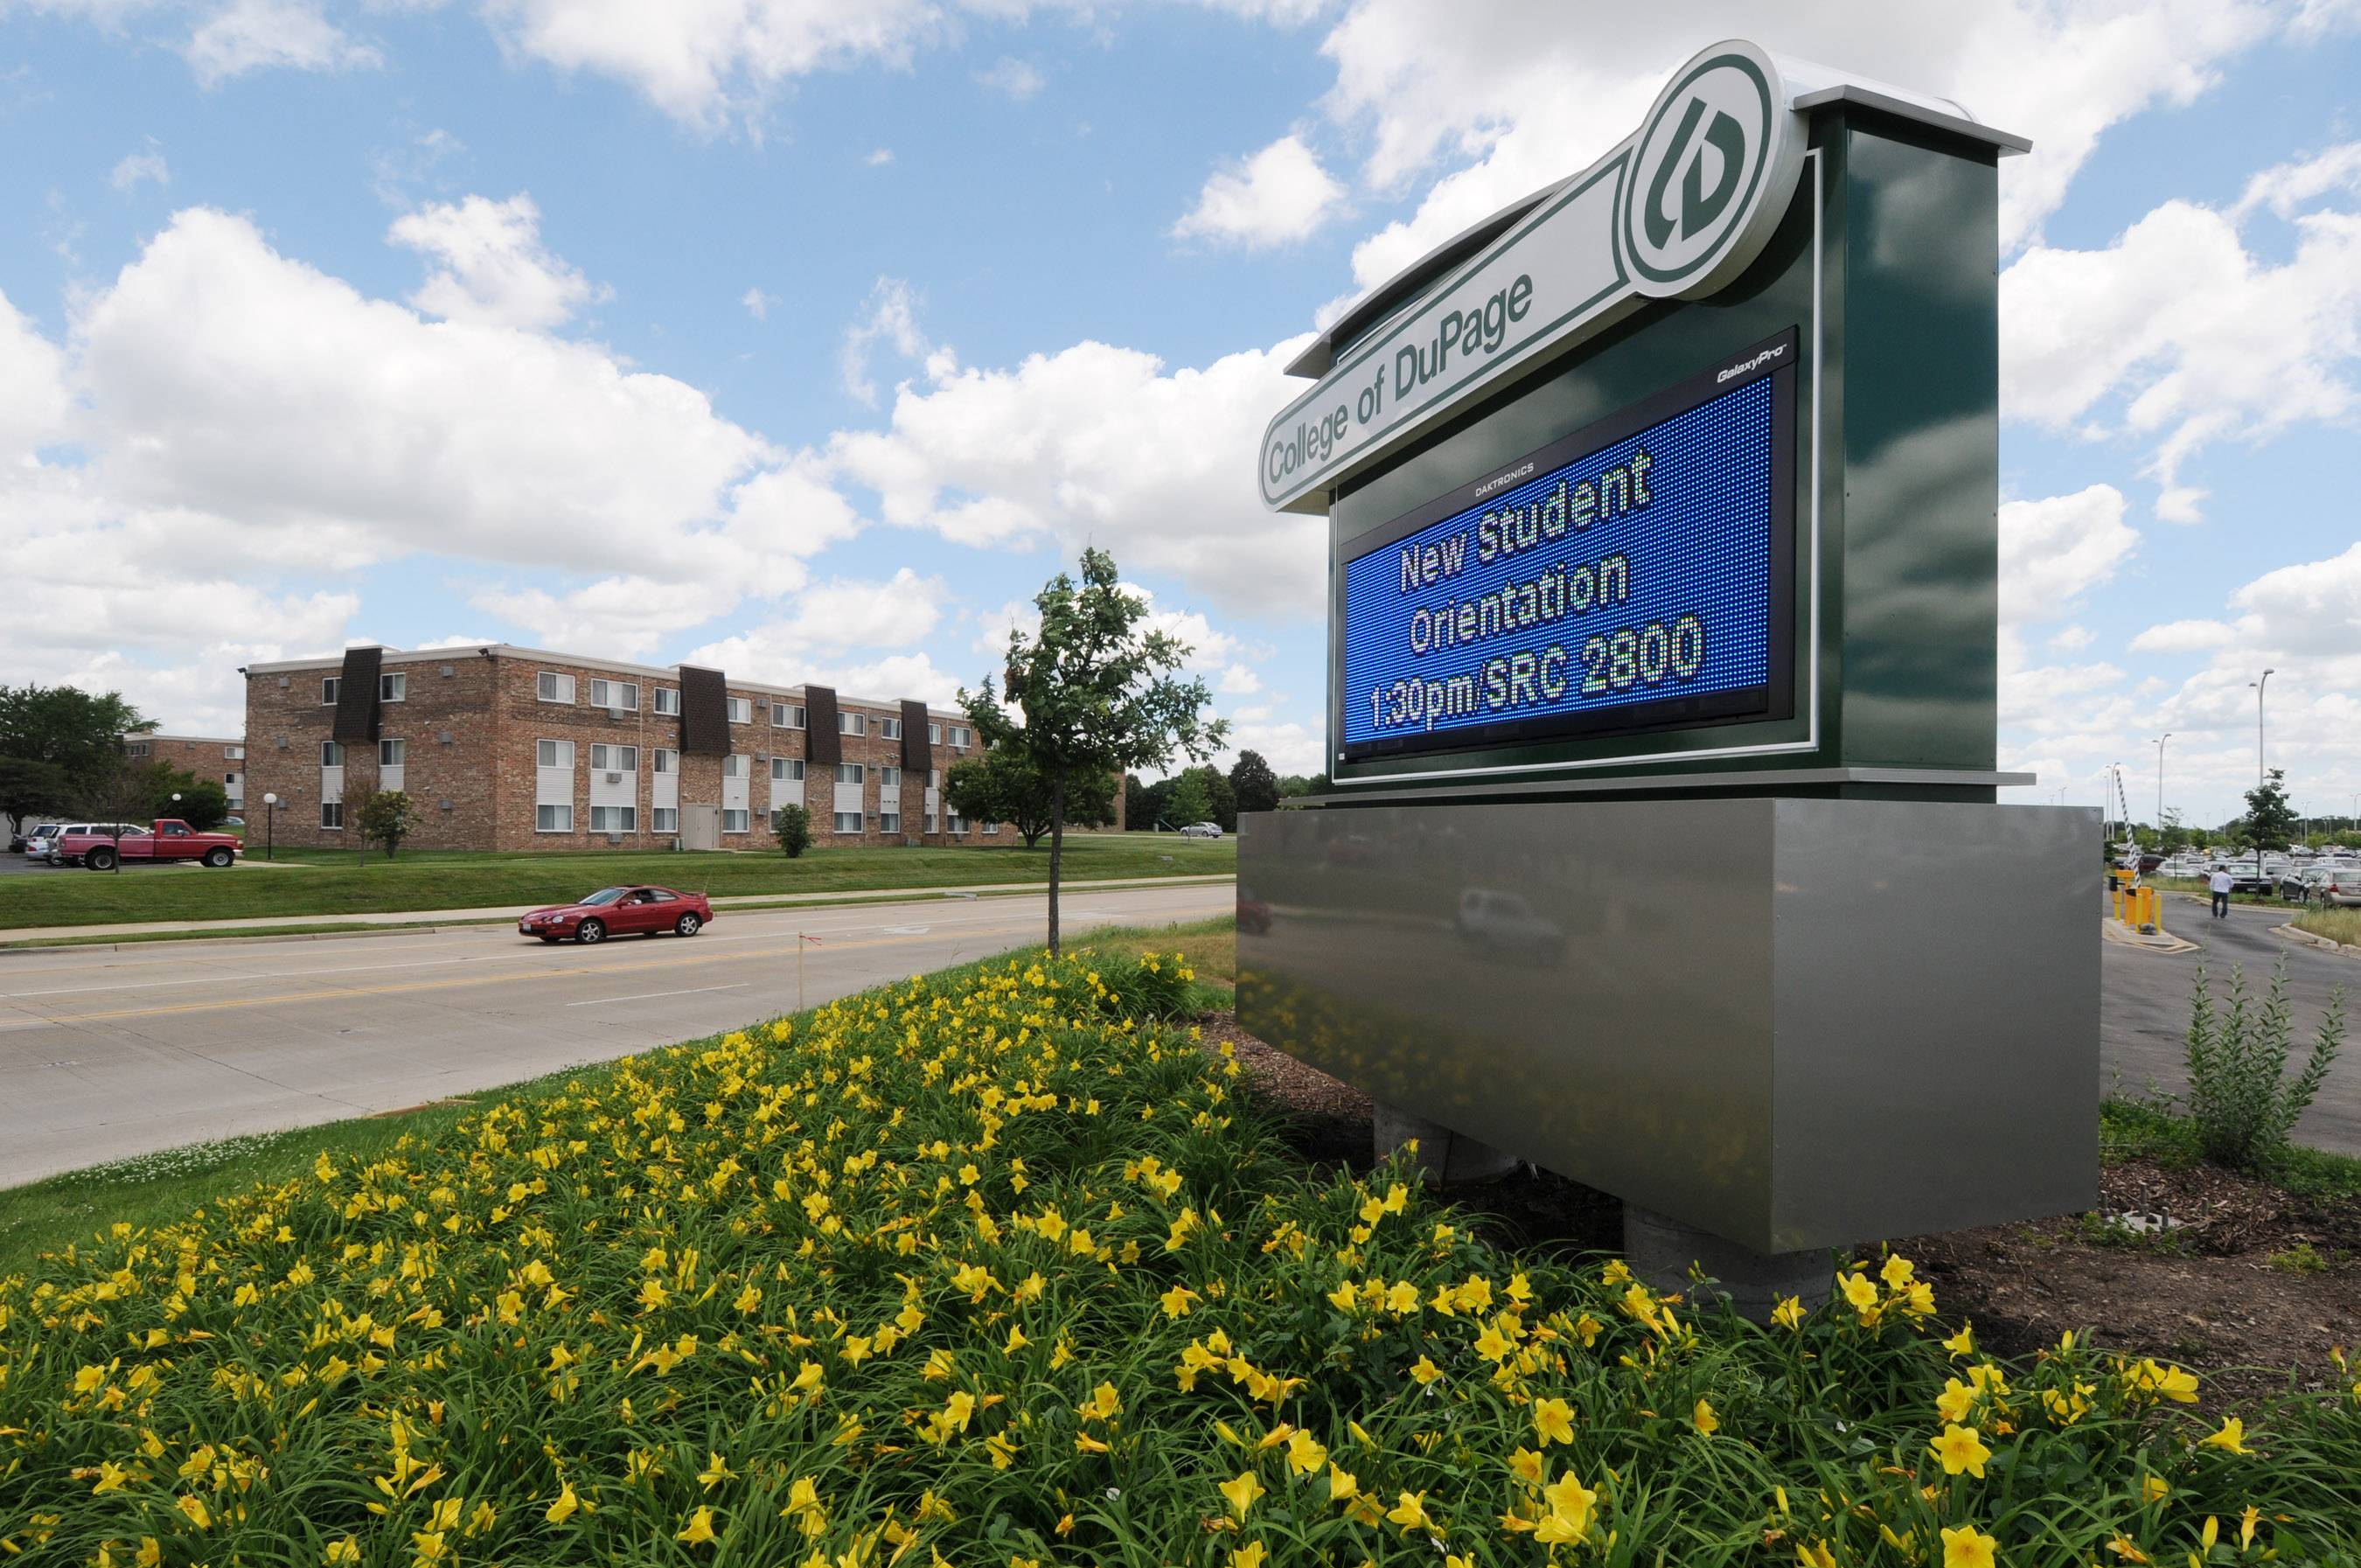 DuPage County prosecutors probing College of DuPage, charges appear unlikely